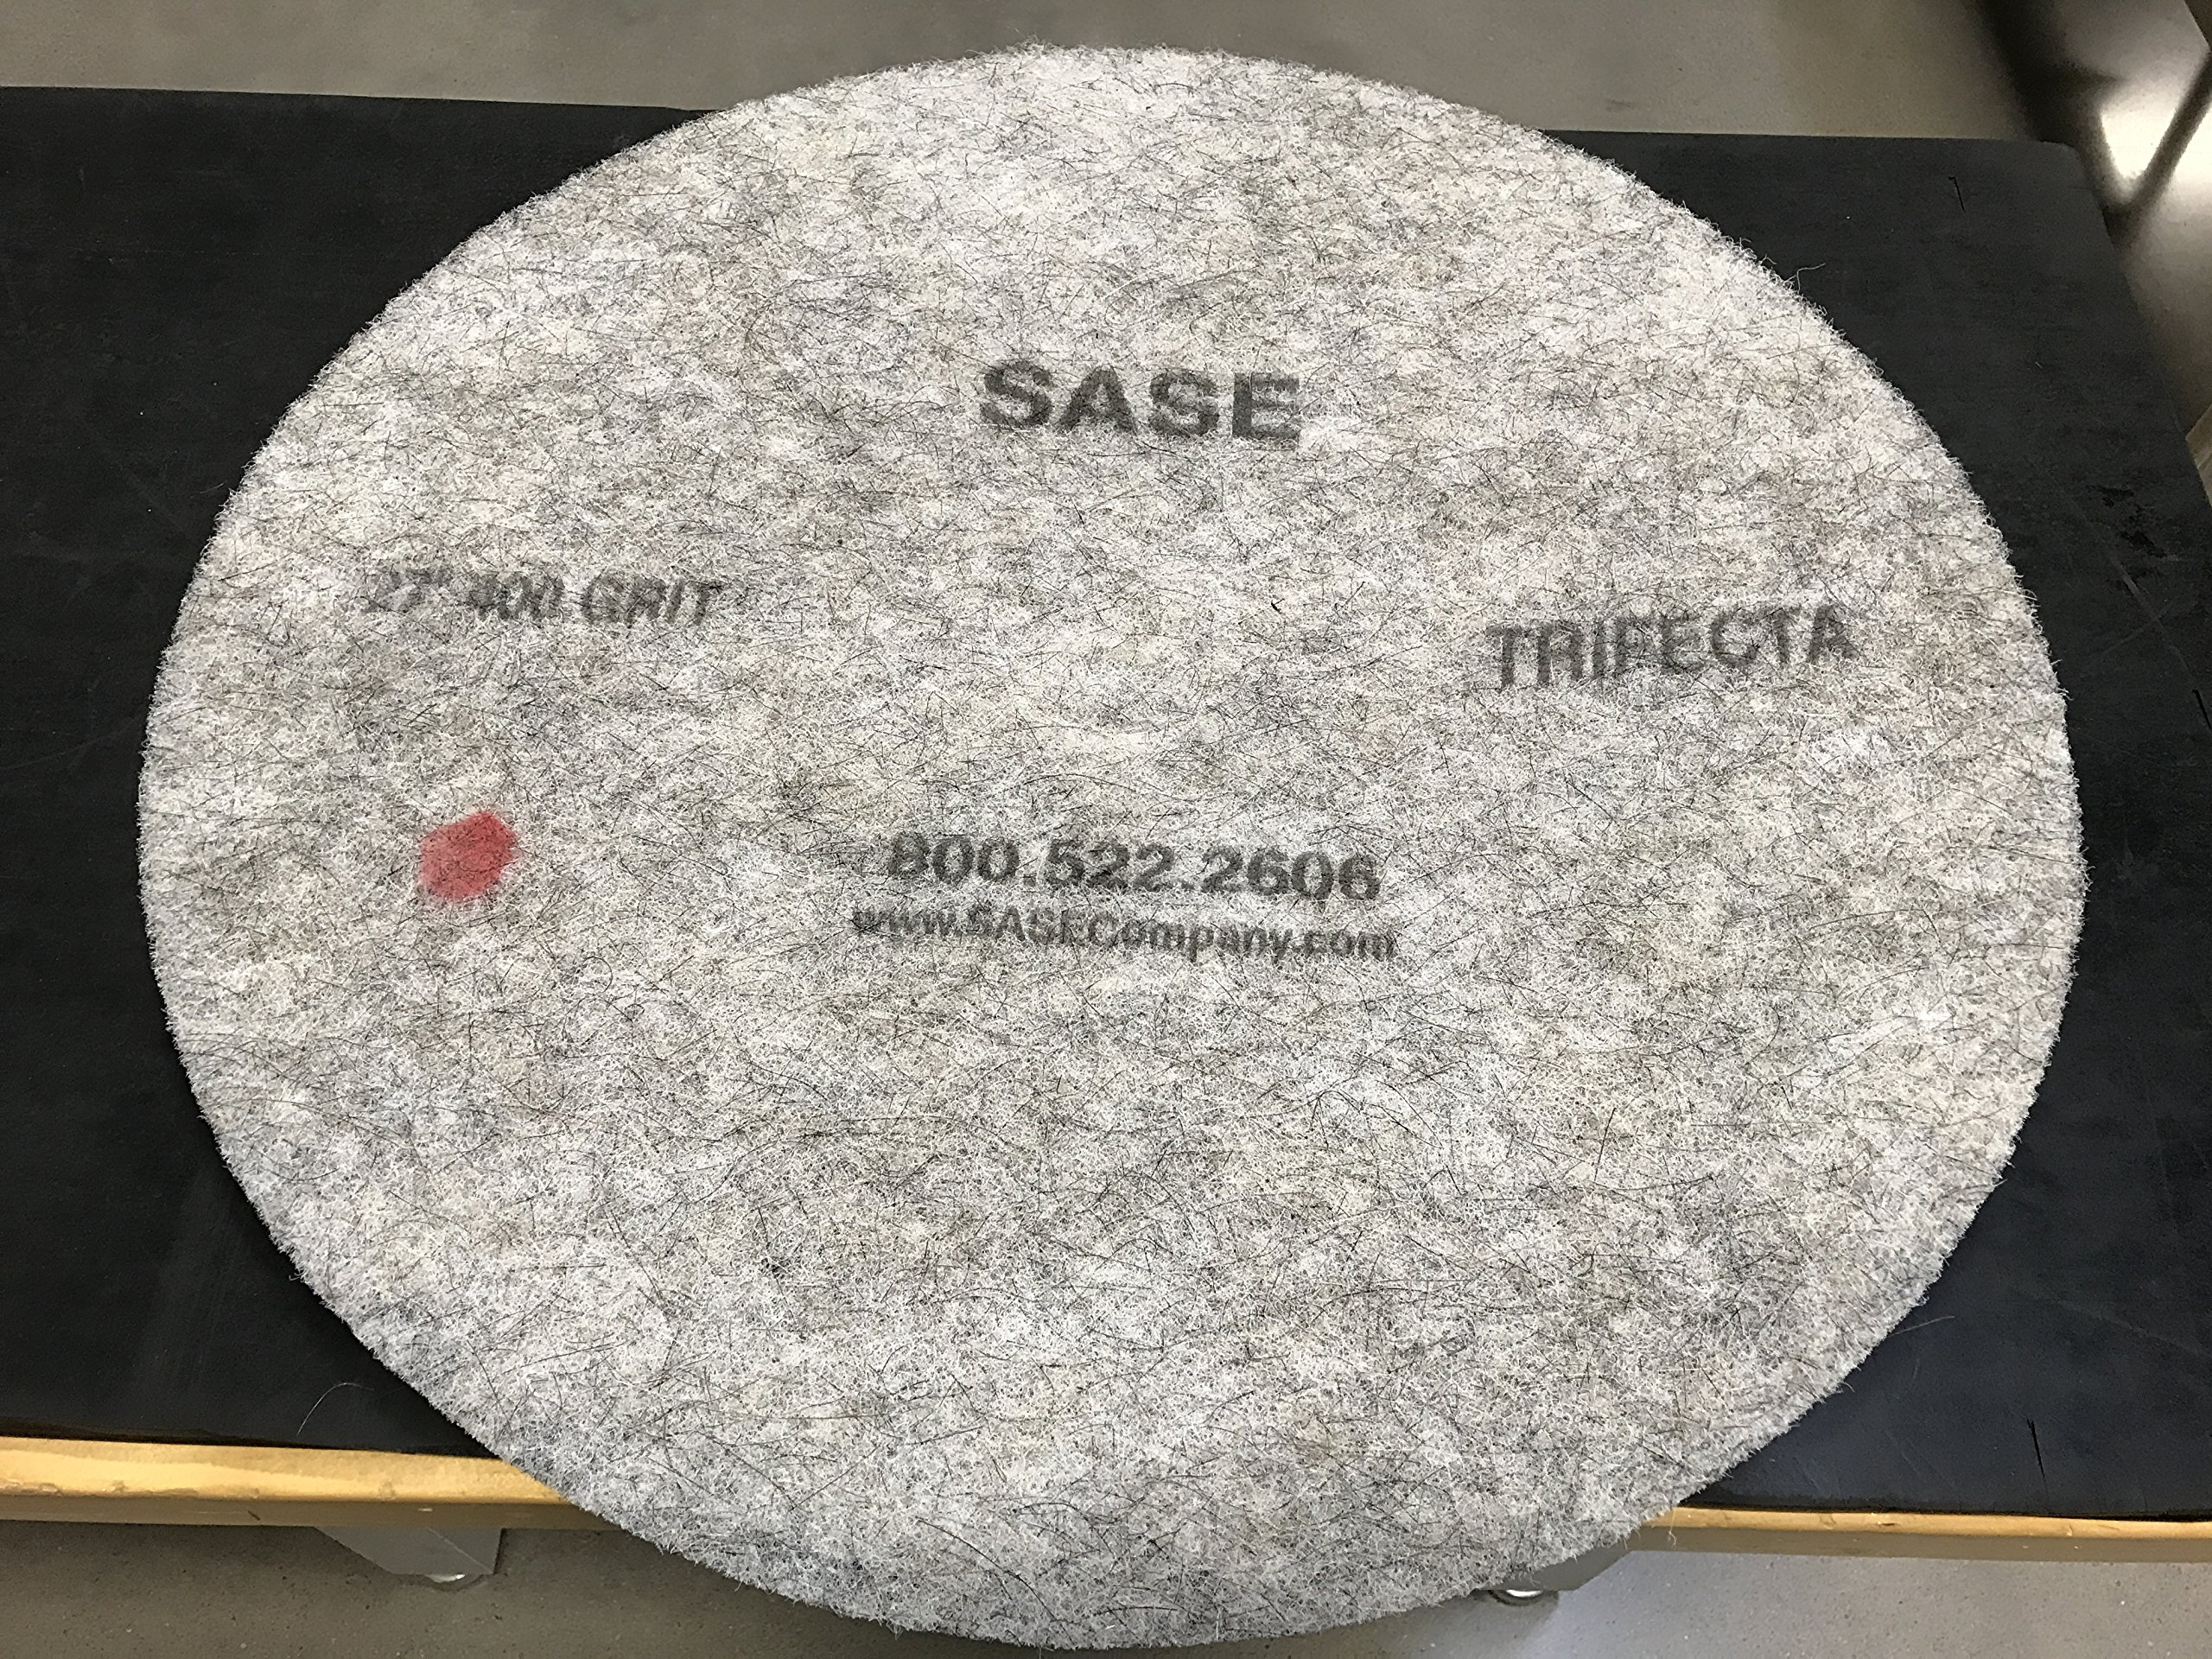 27 Inch 2 Pack Sase Trifecta Super Gloss High Speed Polishing Pads 400 Grit by SASE